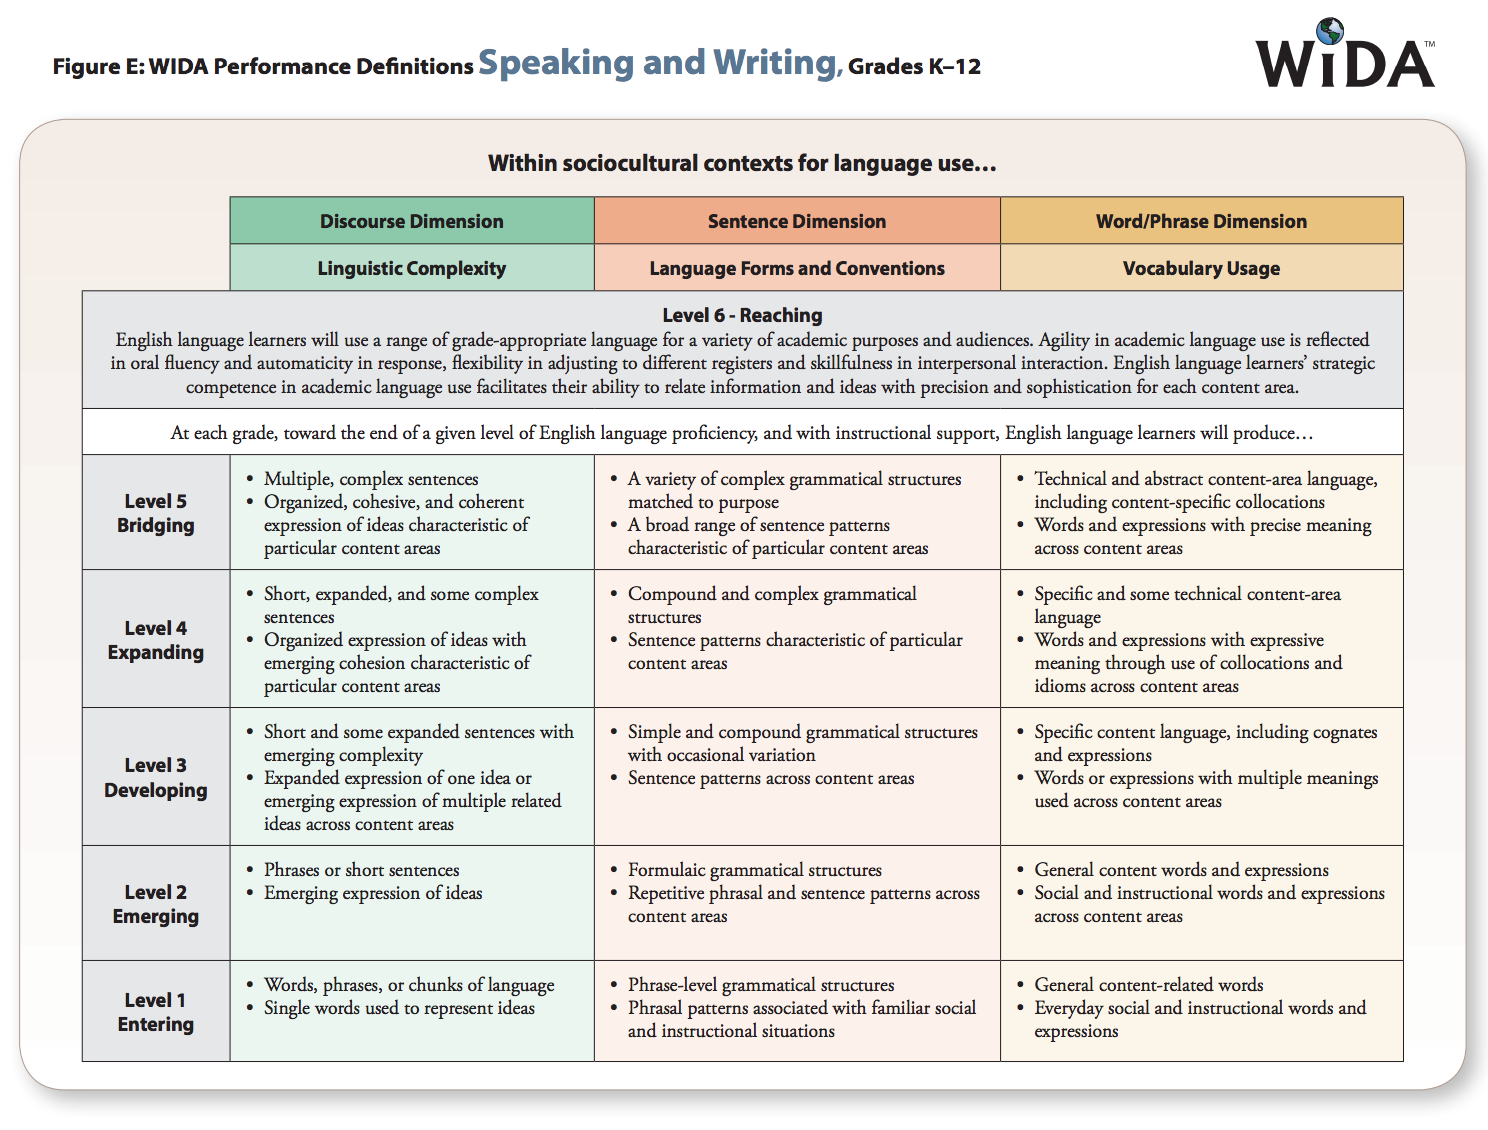 WIDA Performance Definitions for Speaking and Writing, page 7. https://wida.wisc.edu/sites/default/files/resource/2012-ELD-Standards.pdf